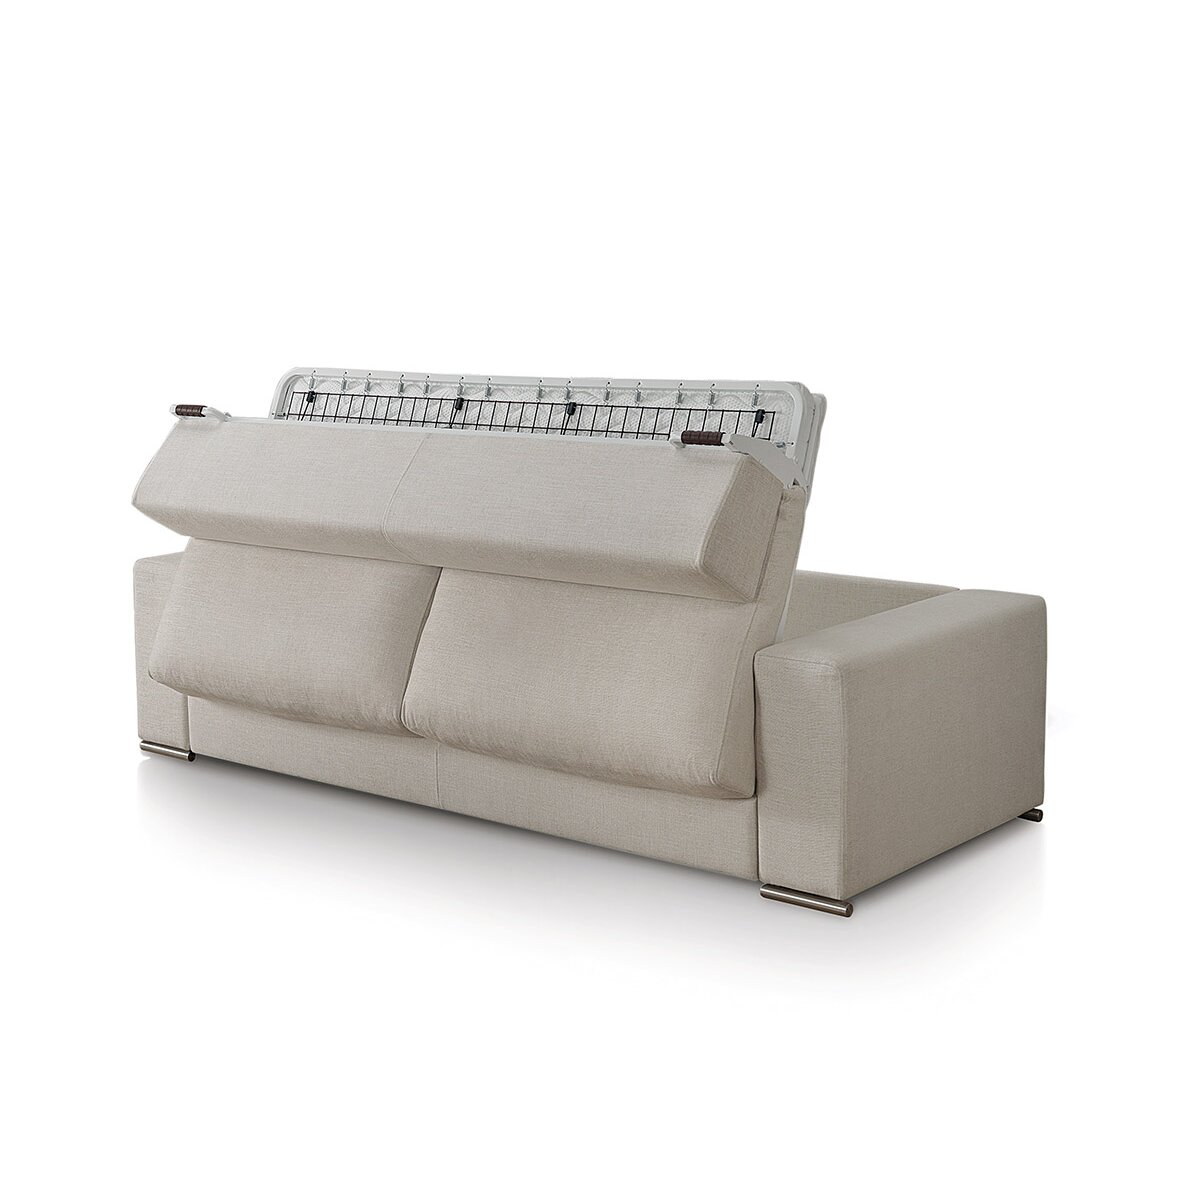 Wide sleeper sofa wayfair for Wide couches